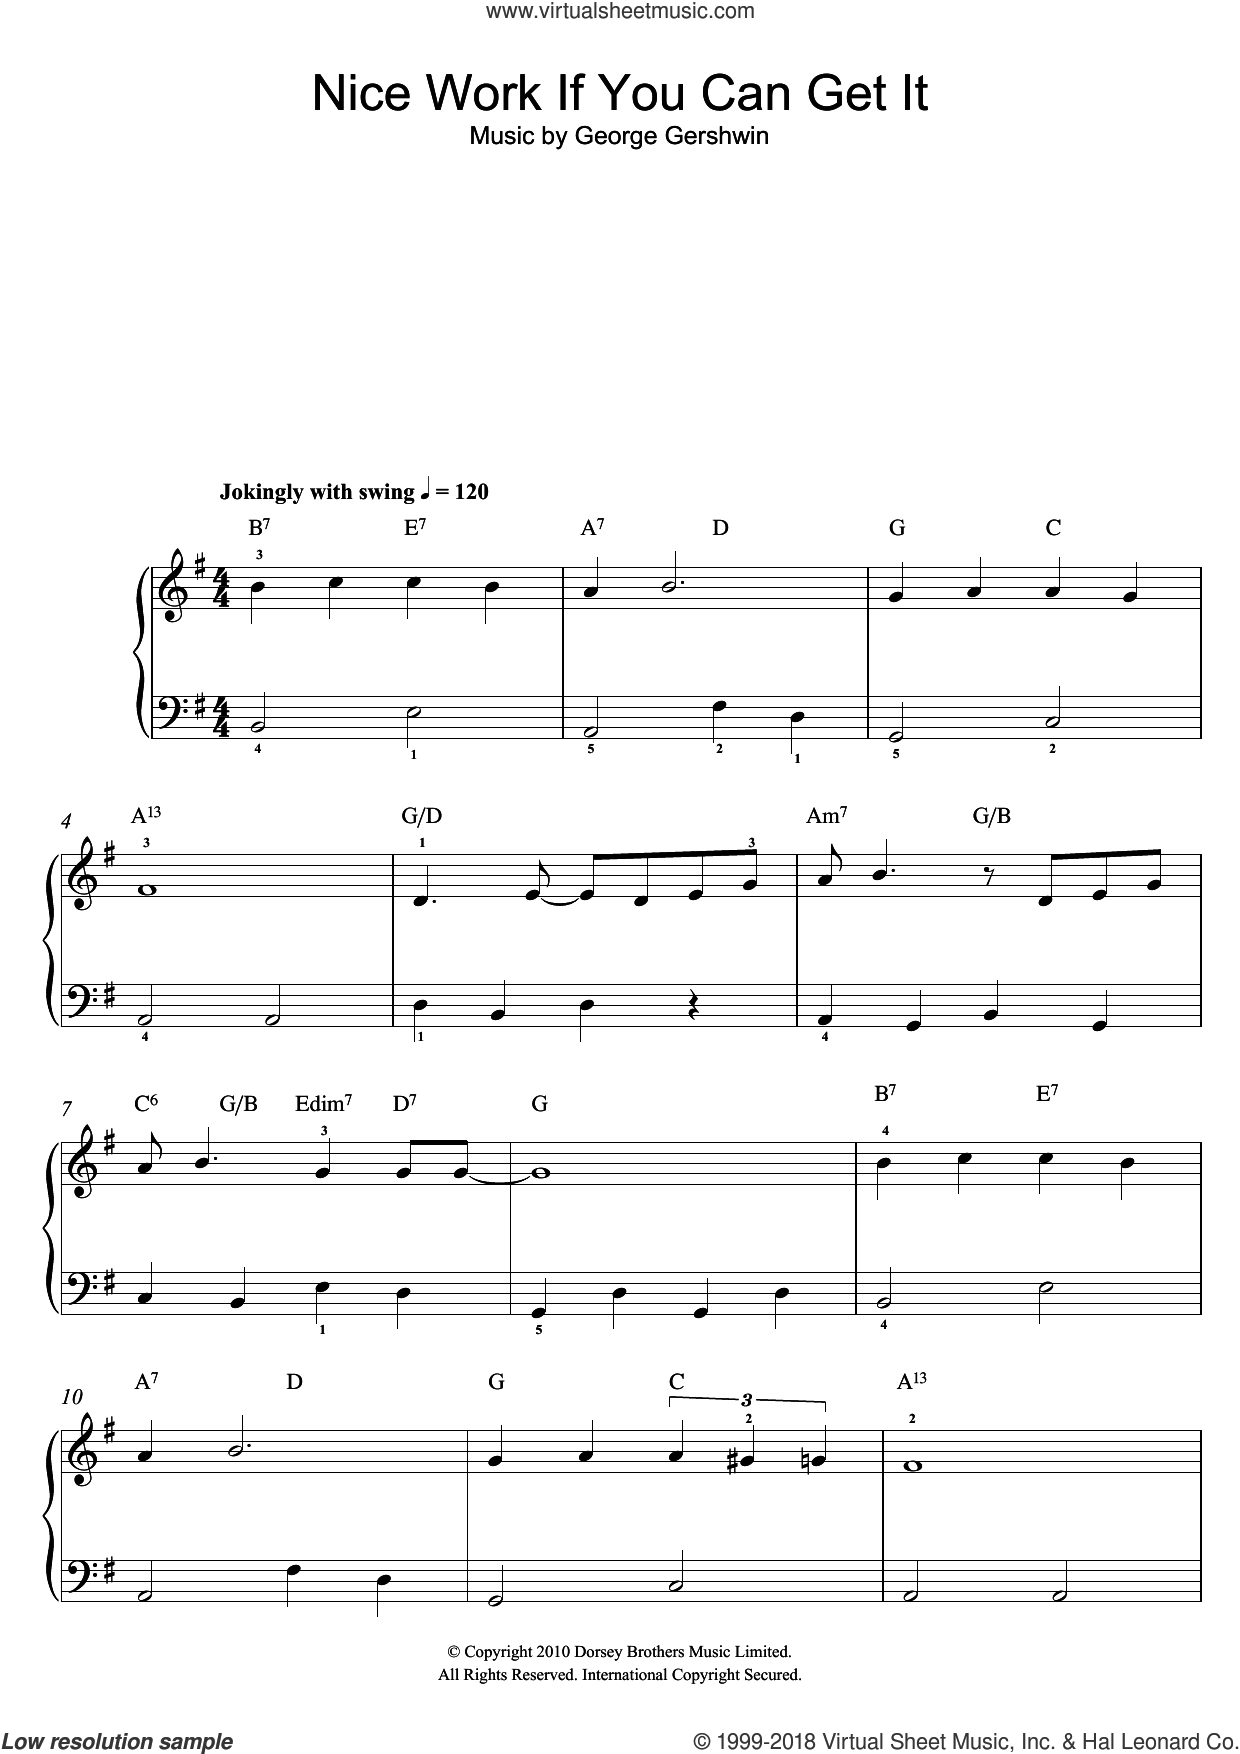 Nice Work If You Can Get It sheet music for piano solo (chords) by George Gershwin